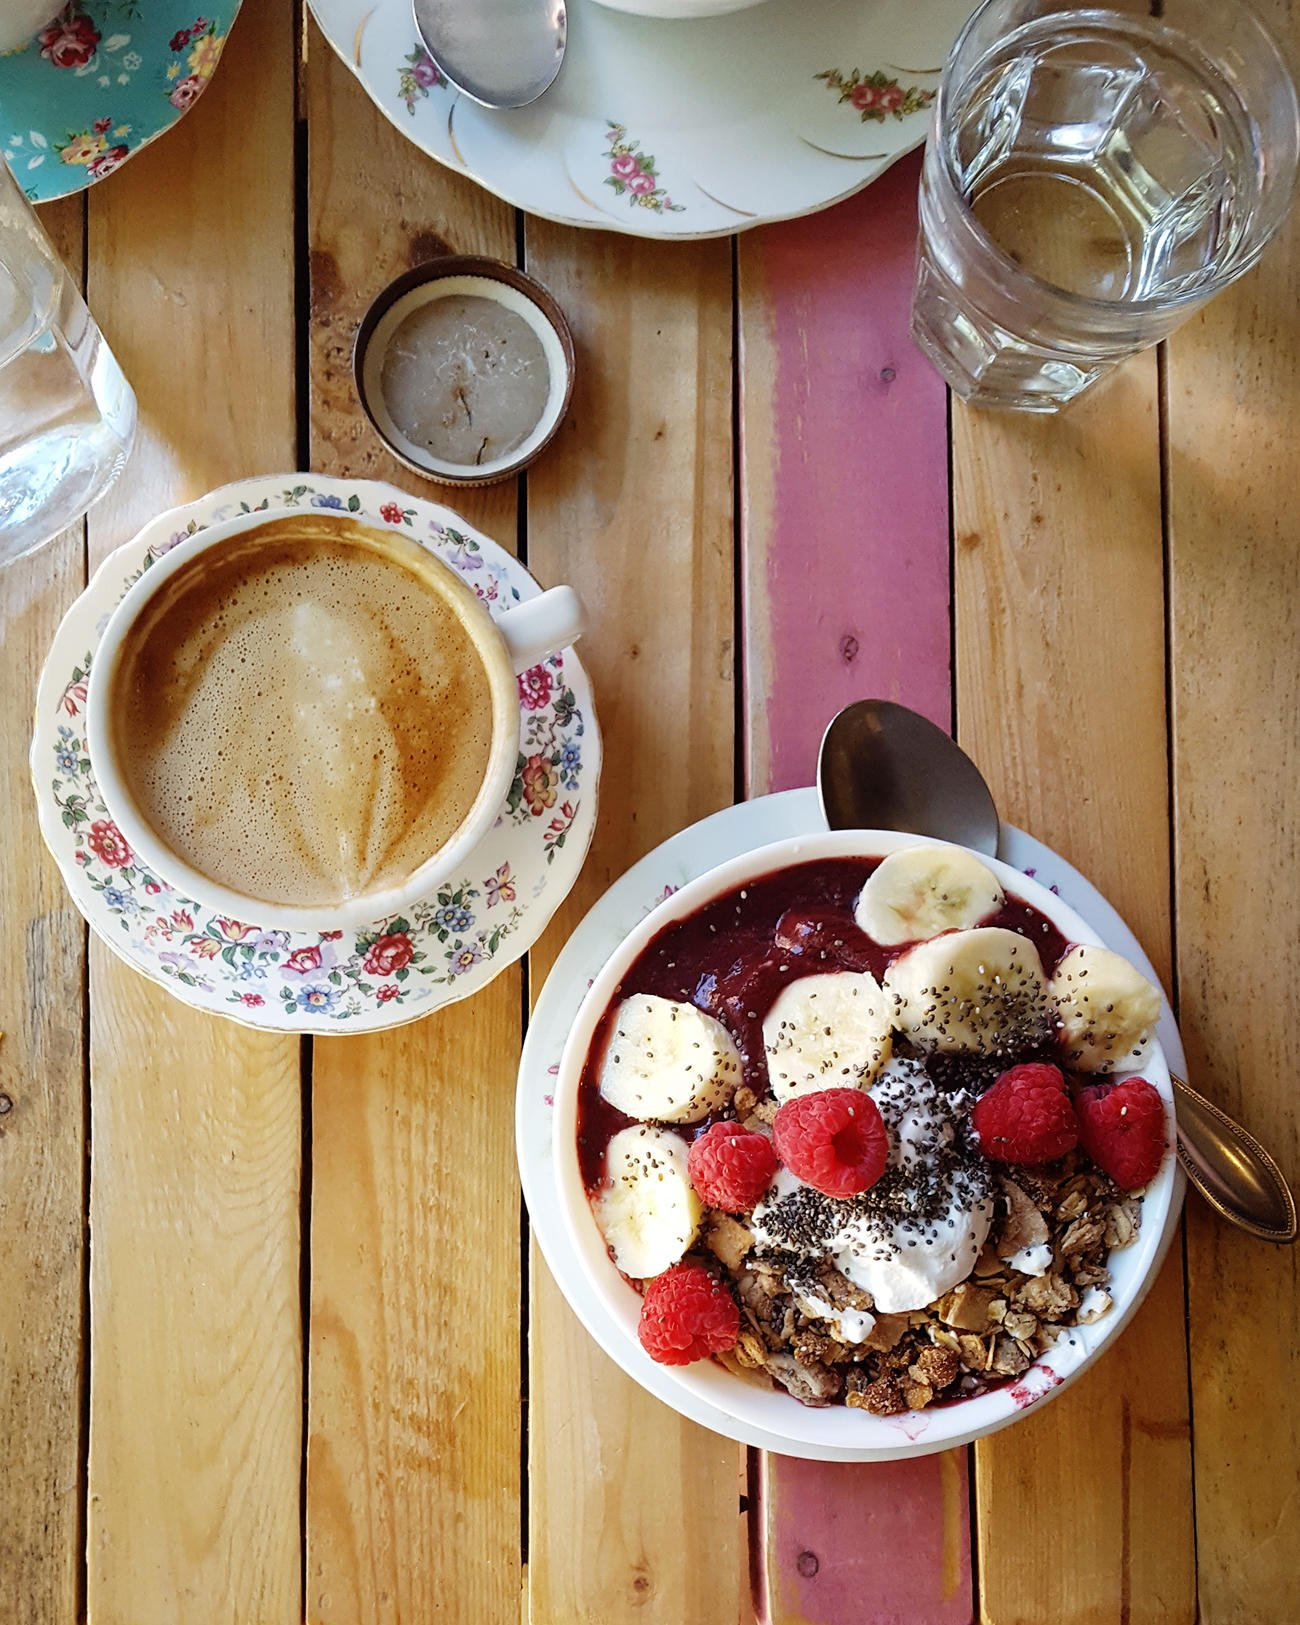 Little Choc Apothecary in Brooklyn offers an array of vegan treats like crepes, smoothie bowls, and coffee drinks.